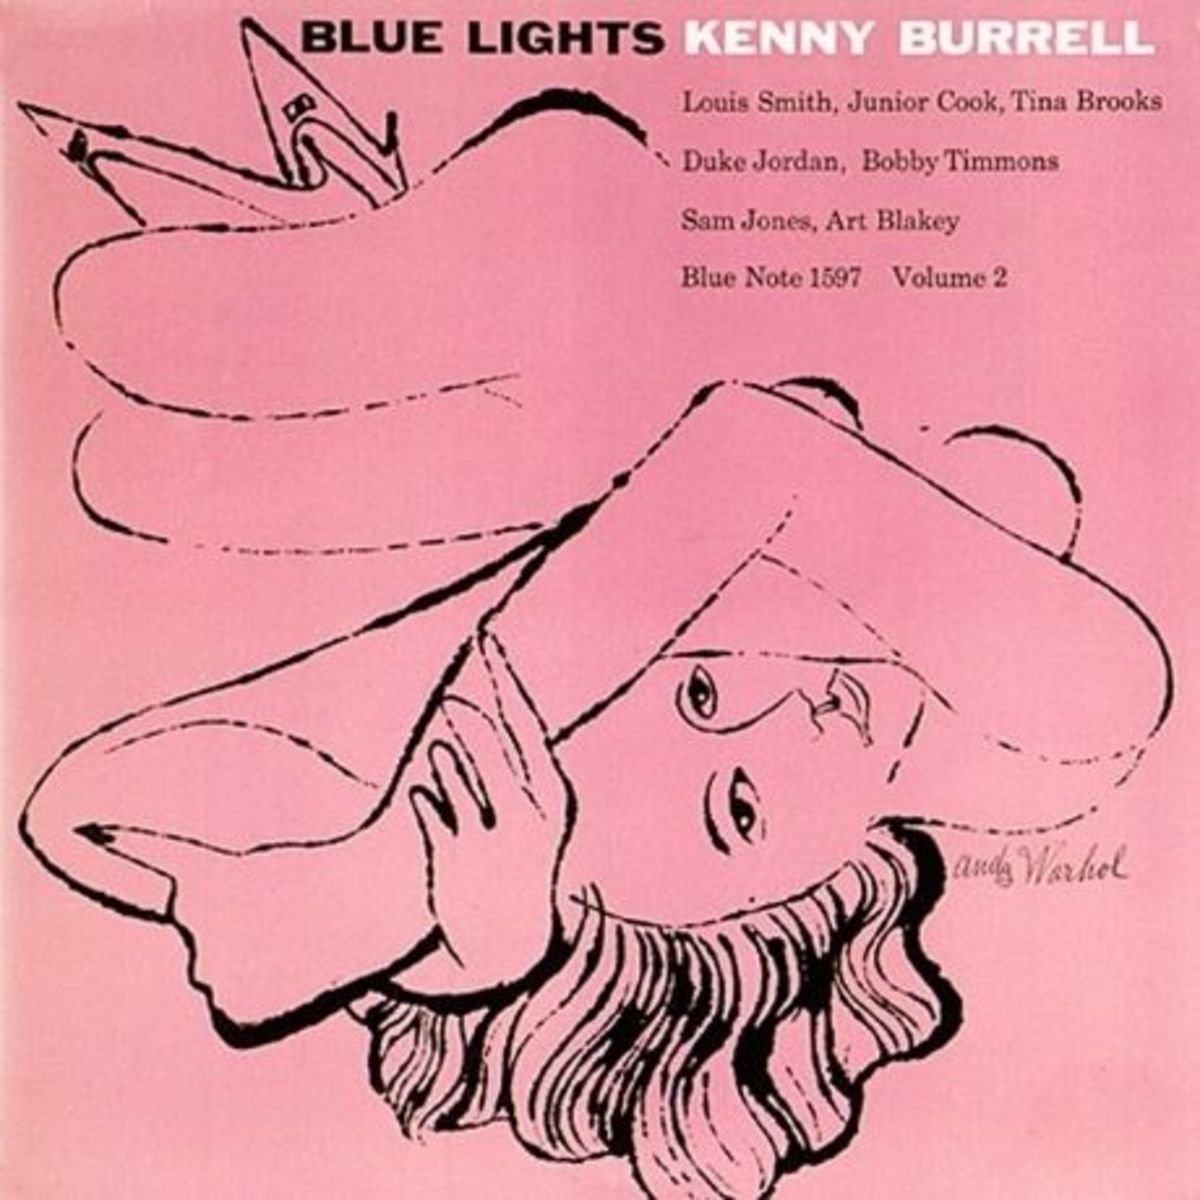 "Kenny Burrell ""Blue Lights, vol. 2"" Blue Note Records BLP 1596 12"" LP Vinyl Record with Album Cover Art by Andy Warhol"